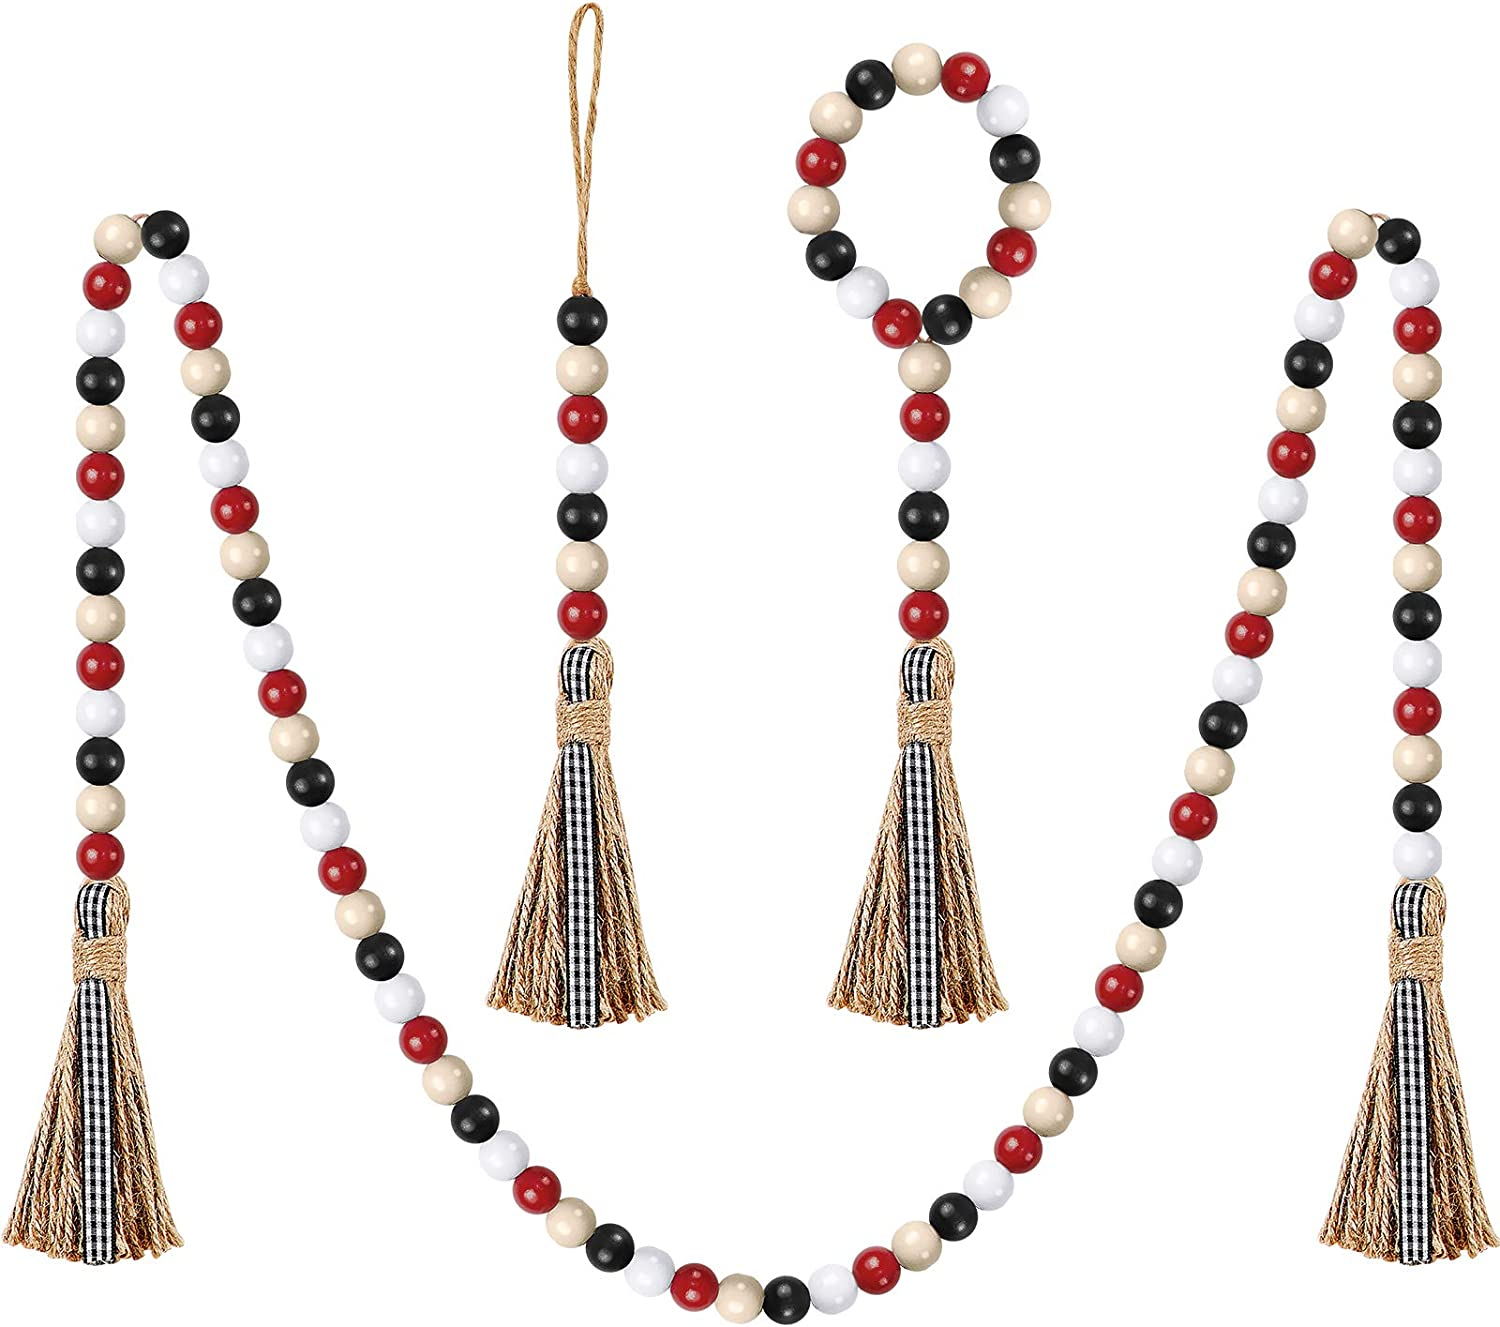 3 Pieces Plaid Wood Beads Tassels Cotton Garland with Tassels Wood Bead Tassel Banner for Christmas Party Home Baby Shower Birthday Decoration Wall Hanging Photo Prop (Black, White, Red, Creamy-White)